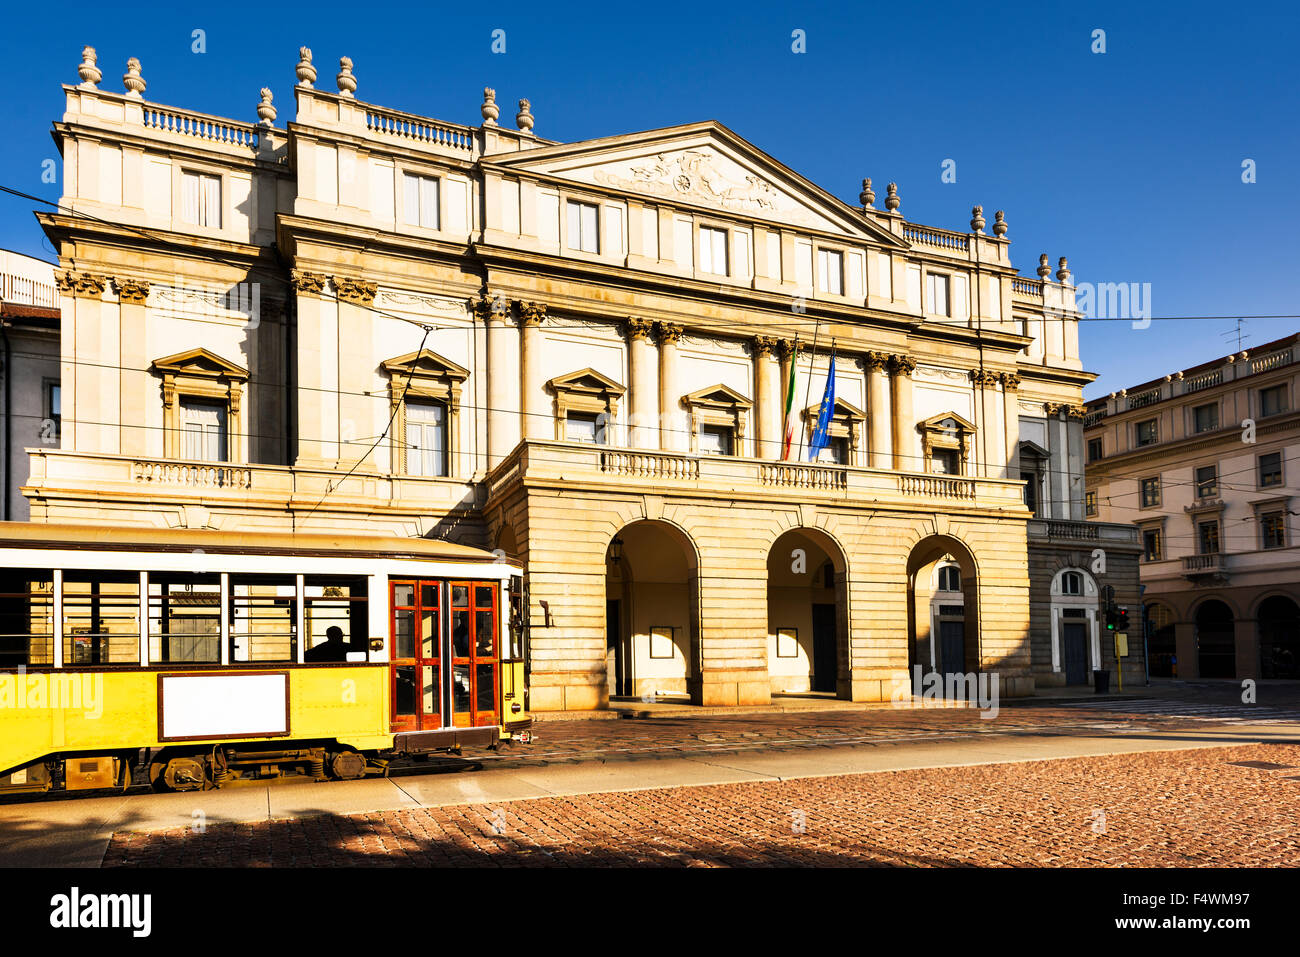 Piazza La Scala and La Scala theatre, in Milan. ITALY - Stock Image